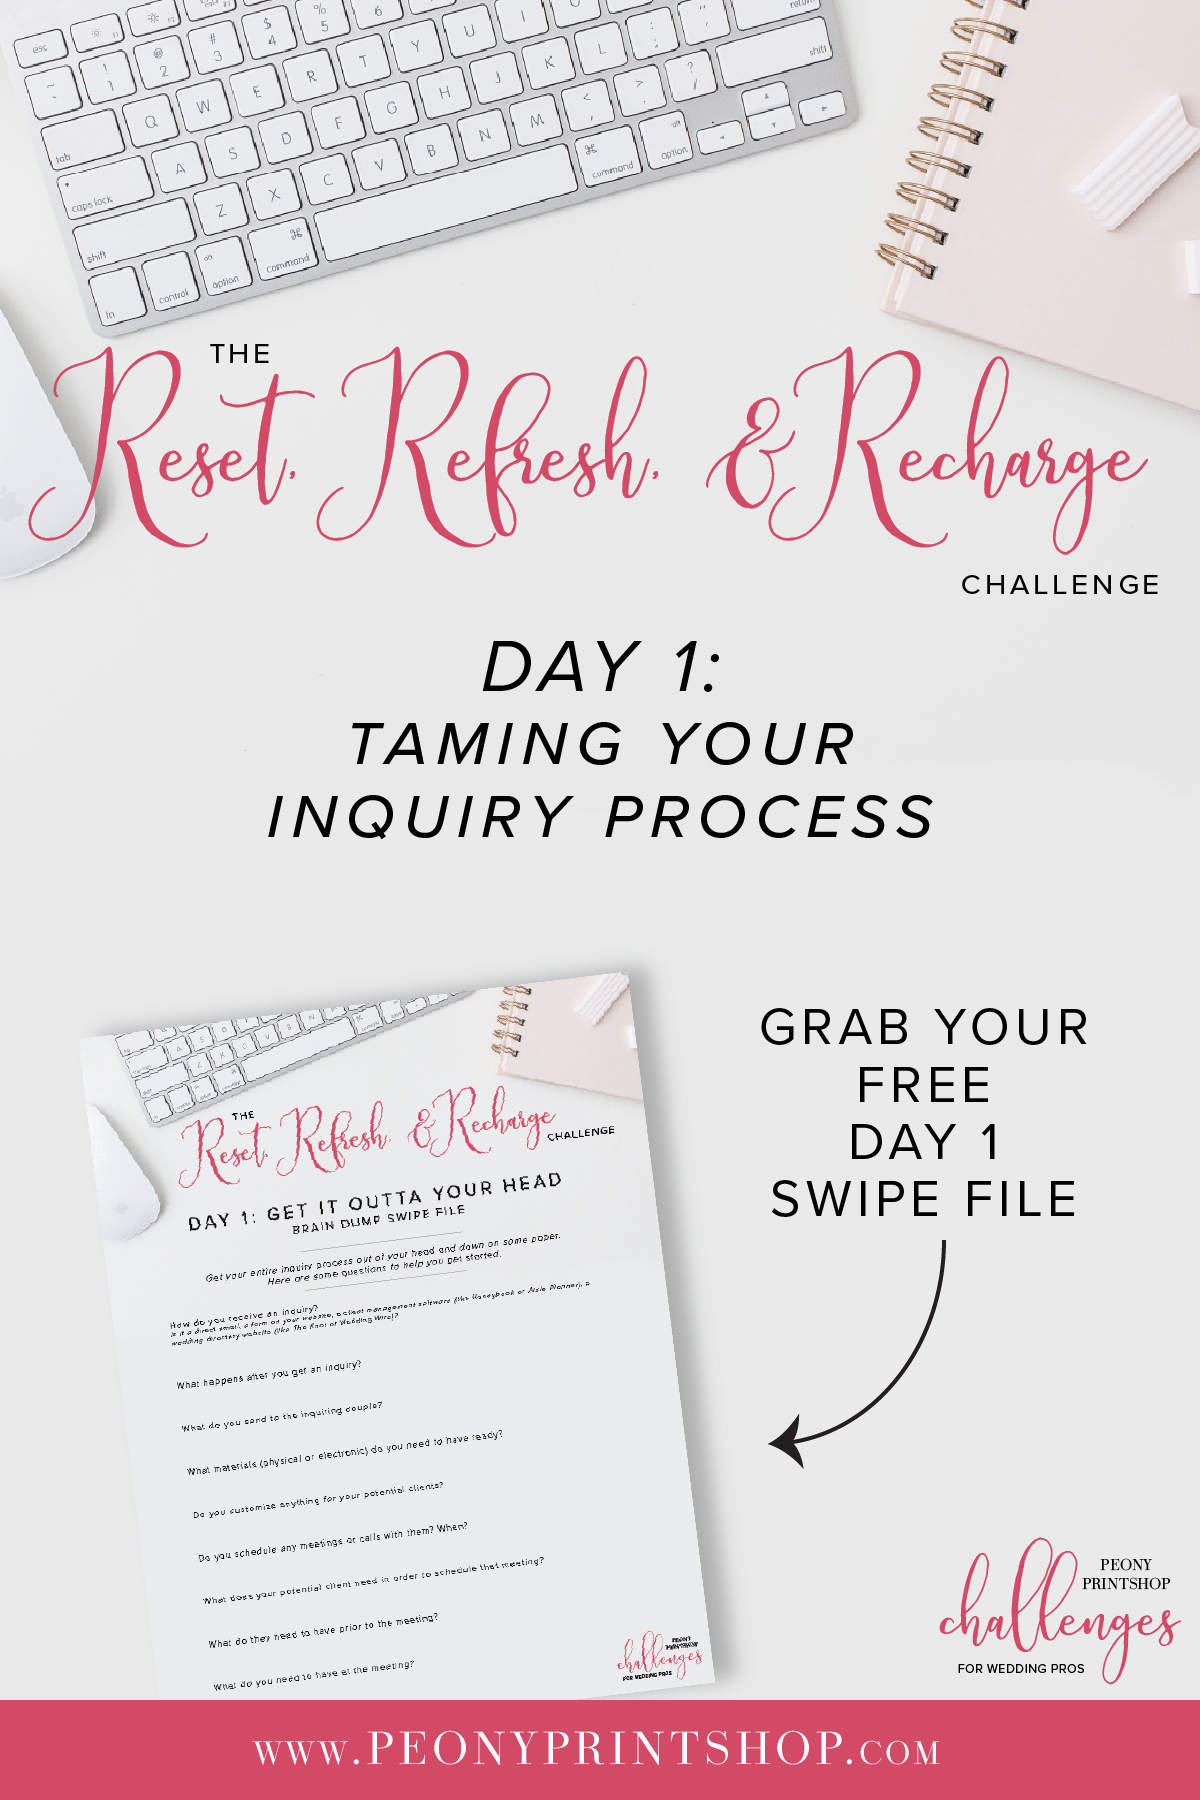 Reset, Refresh, and Recharge 5-Day Challenge on PeonyPrintshop.com   Edition 1 - Taming Your Inquiry Process   Grab your FREE Swipe File for Day 1: Get It All Outta Your Head on the blog.